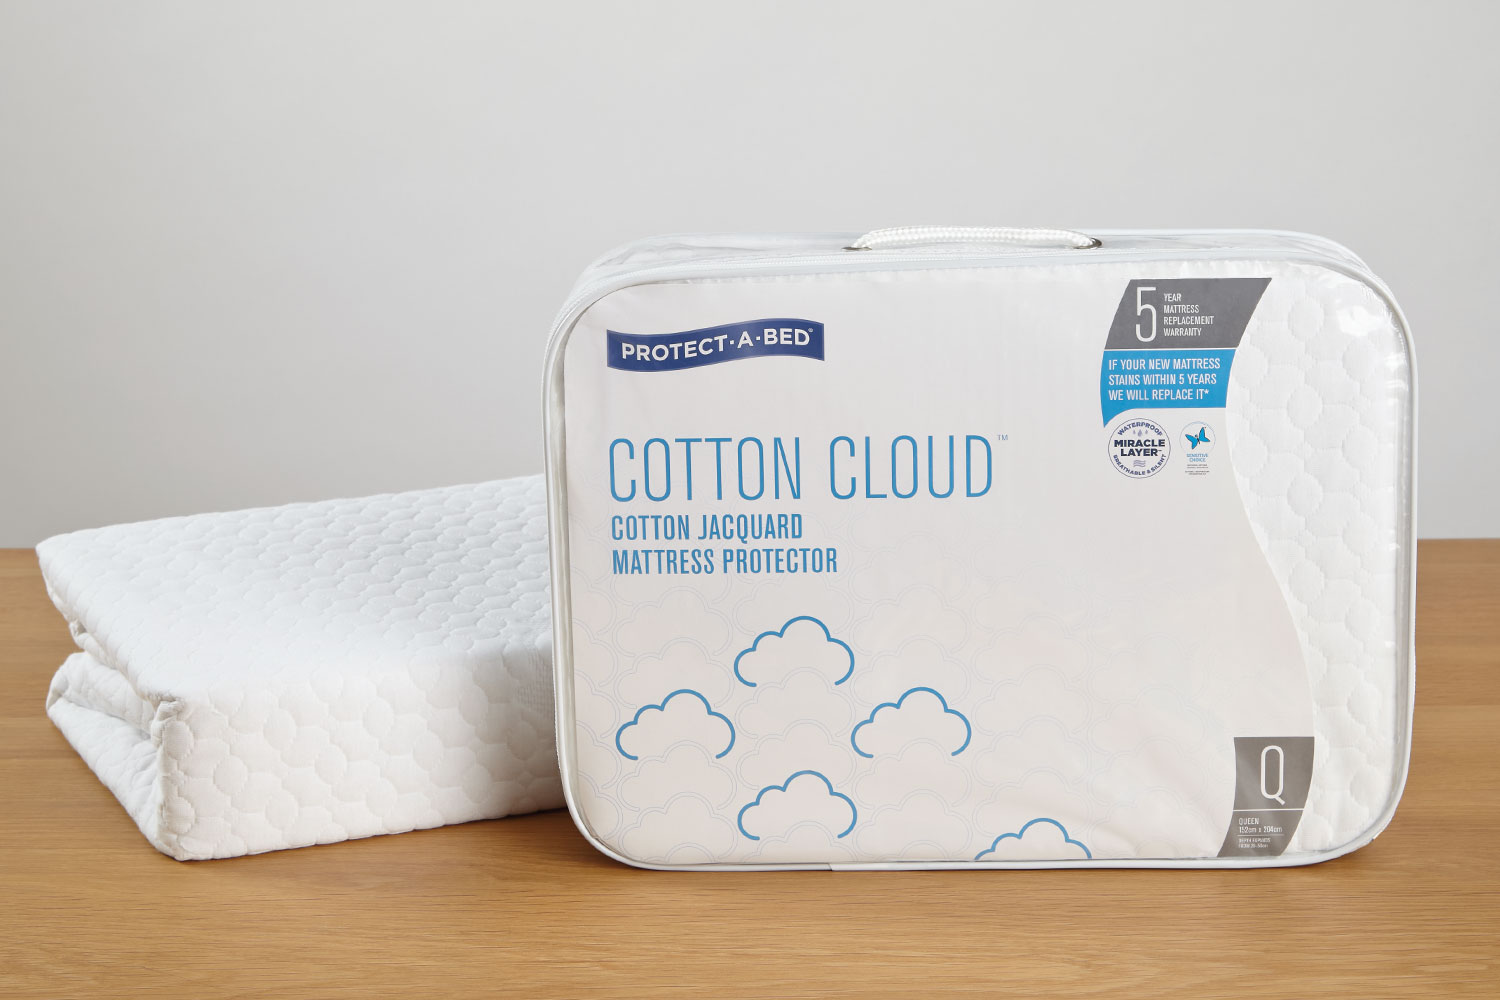 Cotton Cloud Mattress Protector by Protect-A-Bed at Harvey Norman New Zealand